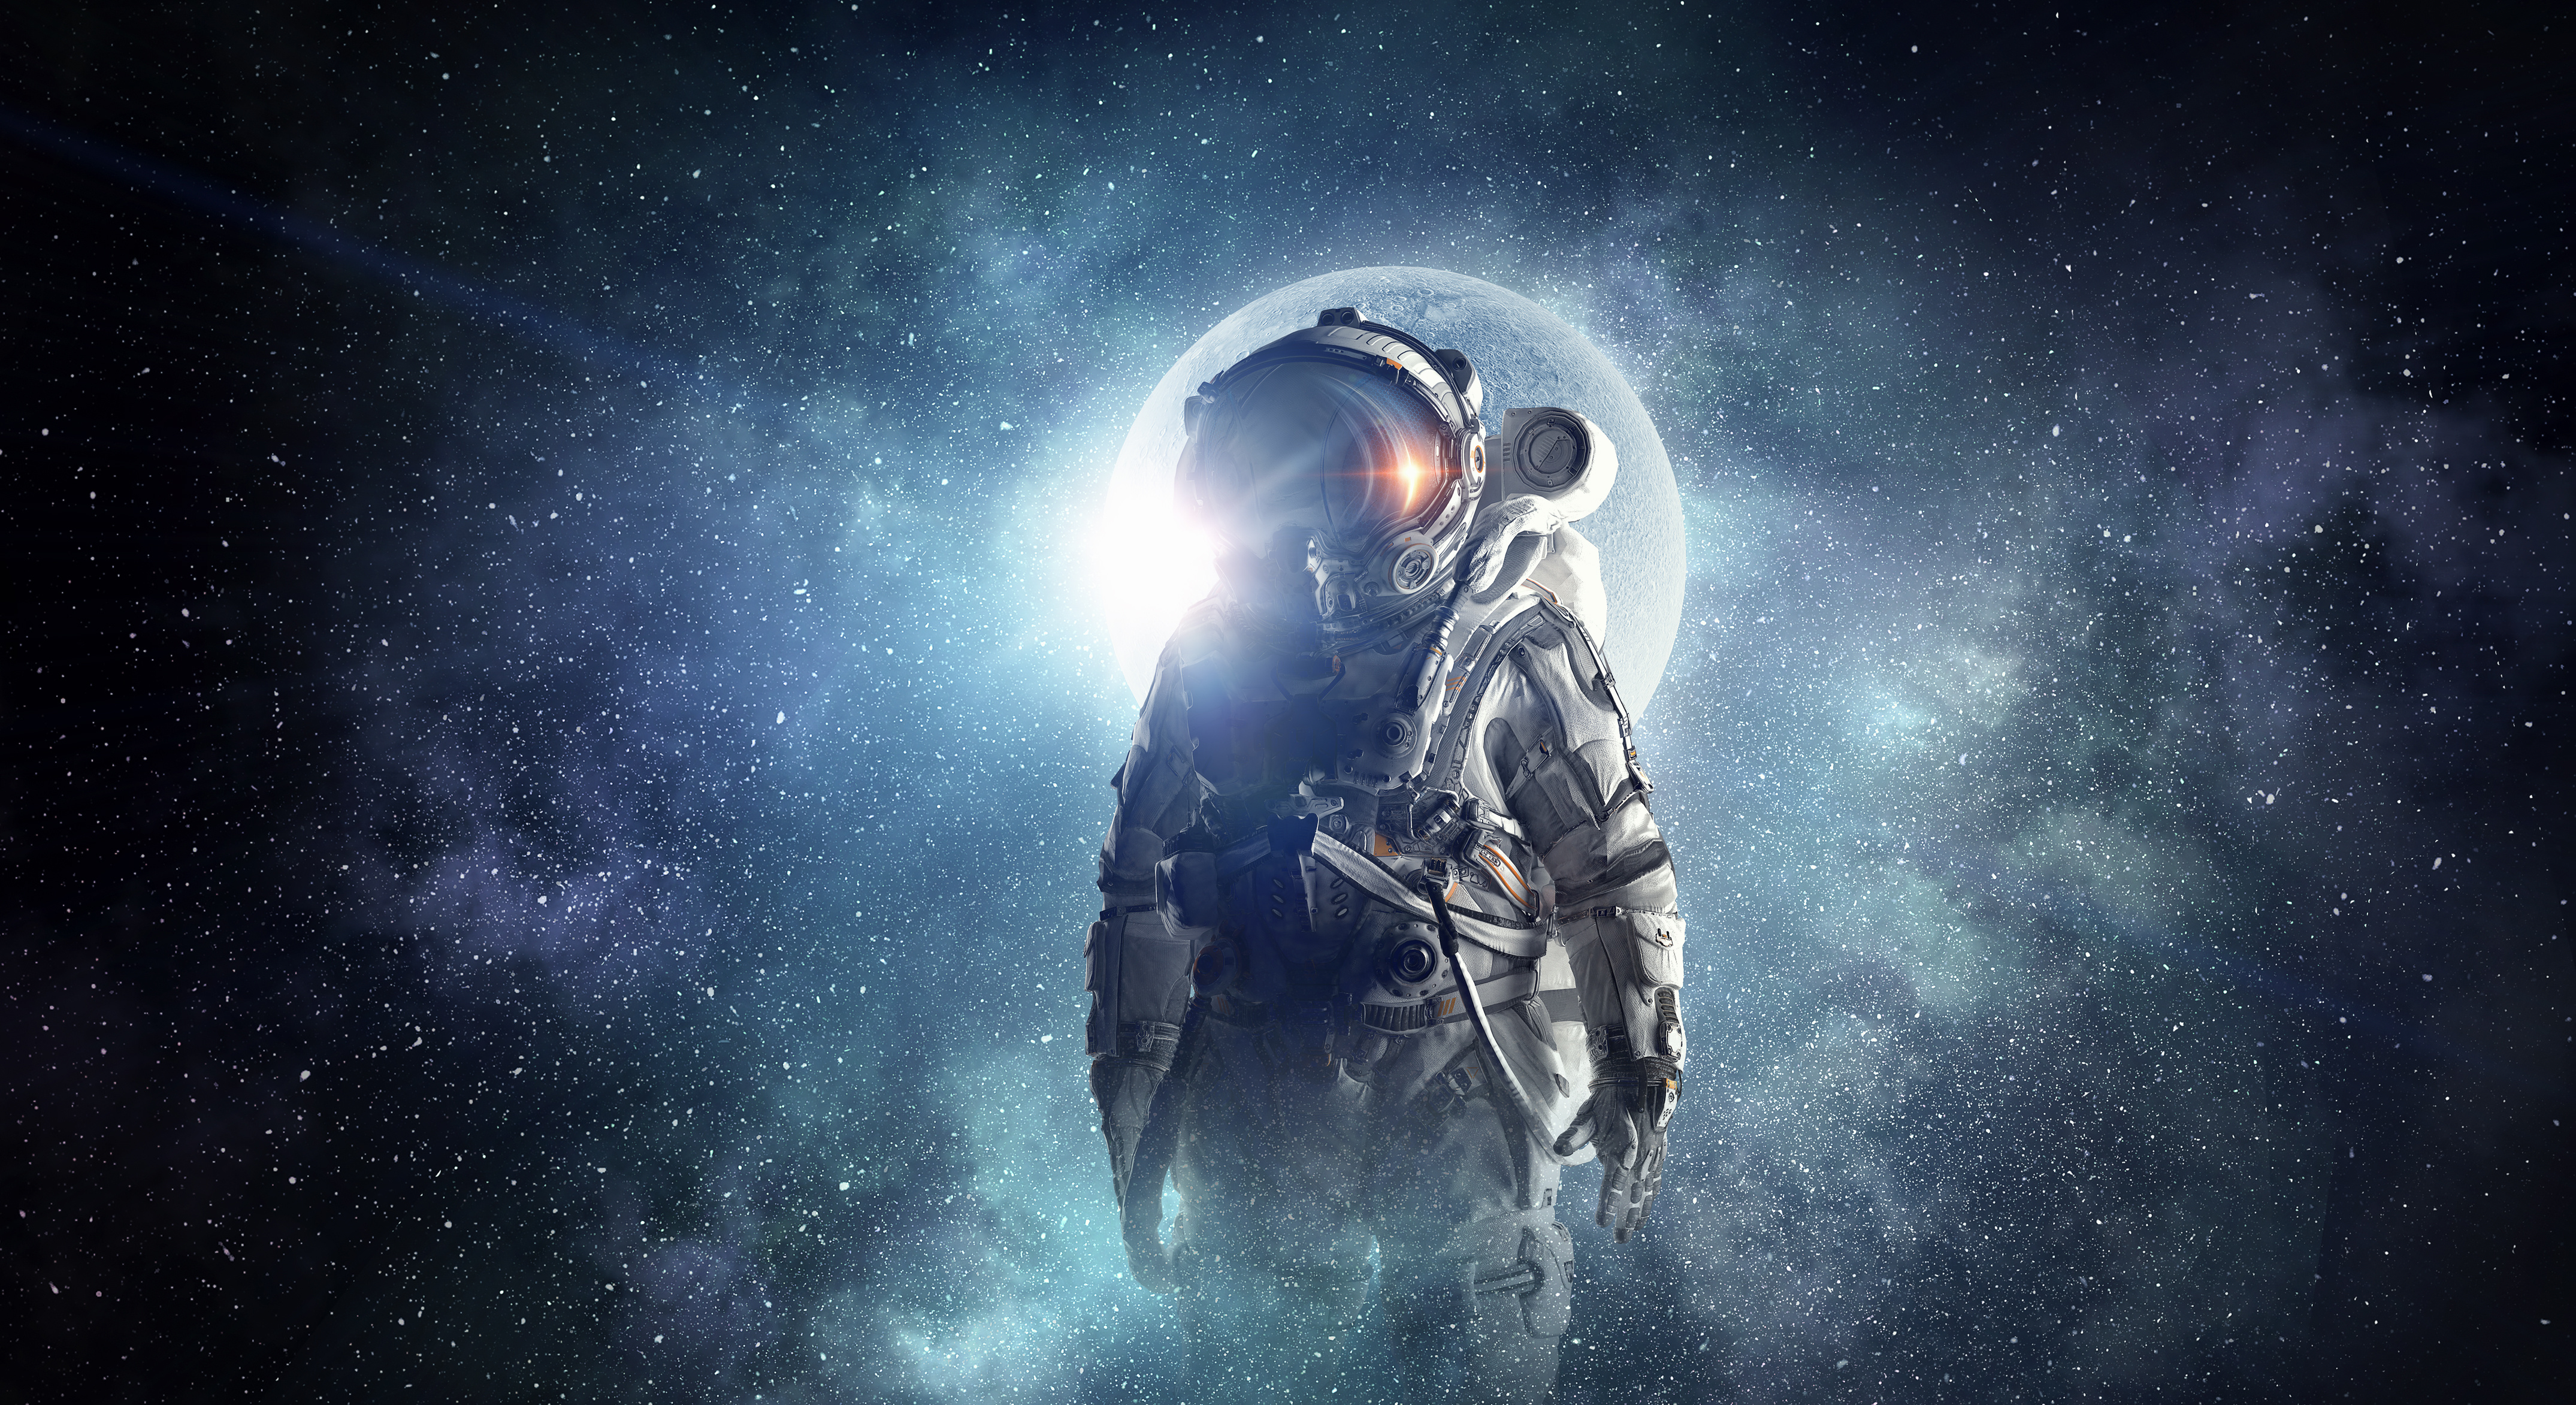 Astronaut 4k Ultra Hd Wallpaper Background Image 4300x2345 Id 923969 Wallpaper Abyss